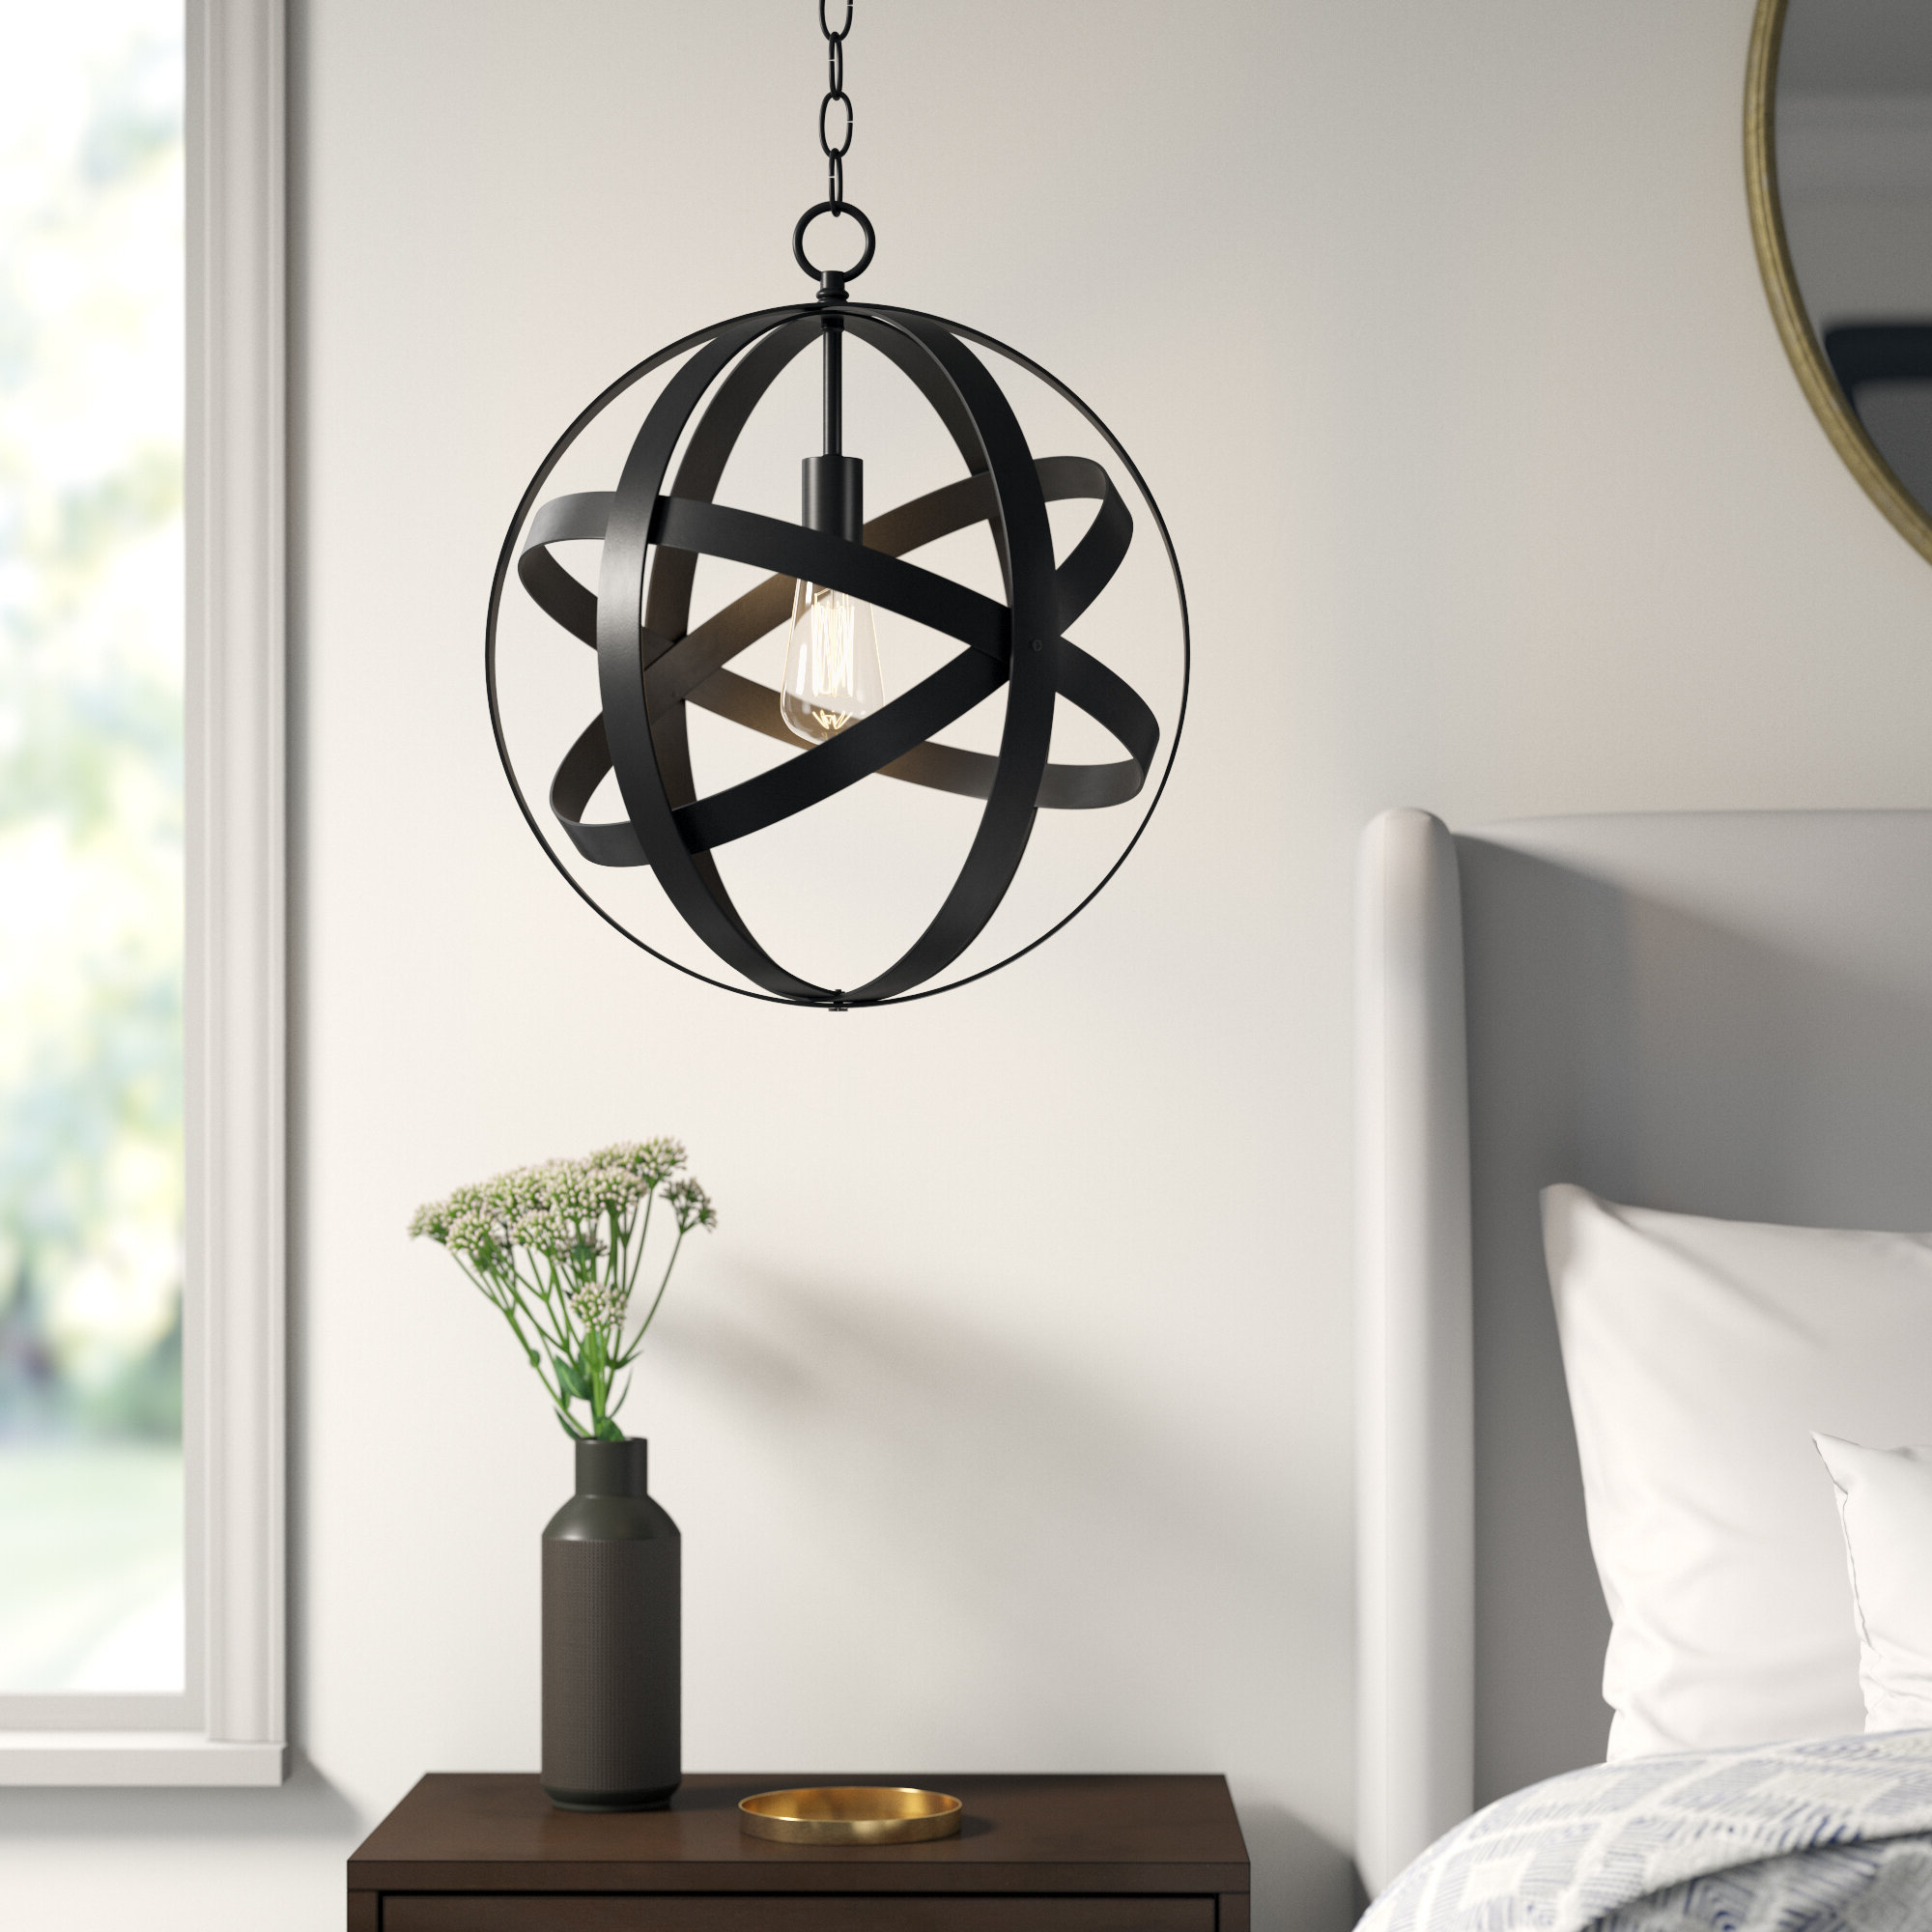 Irwin 1 Light Single Globe Pendants Regarding Popular Ealey 1 Light Globe Pendant (View 7 of 20)